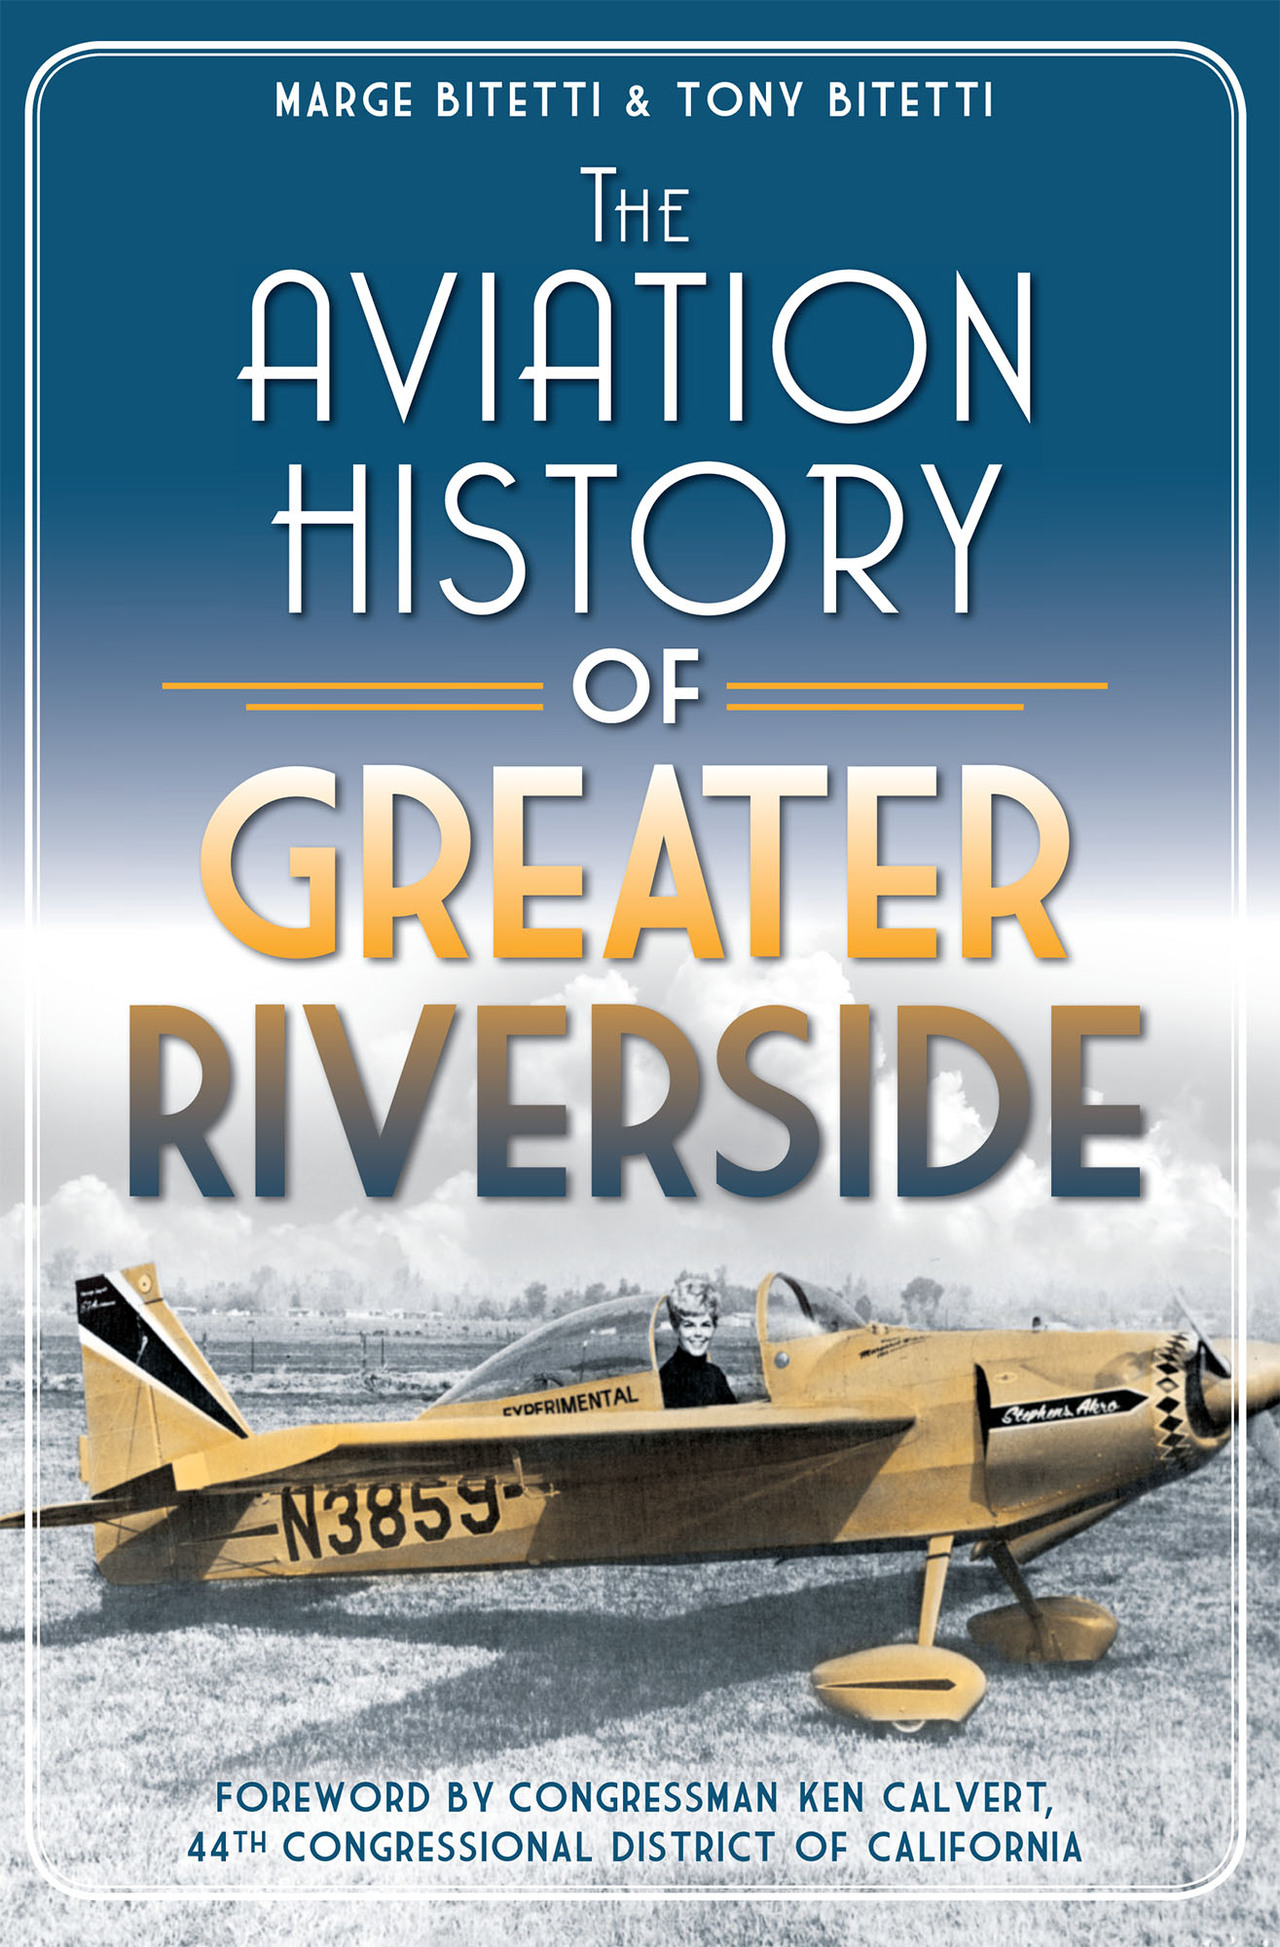 Aviation history of greater riverside  cover